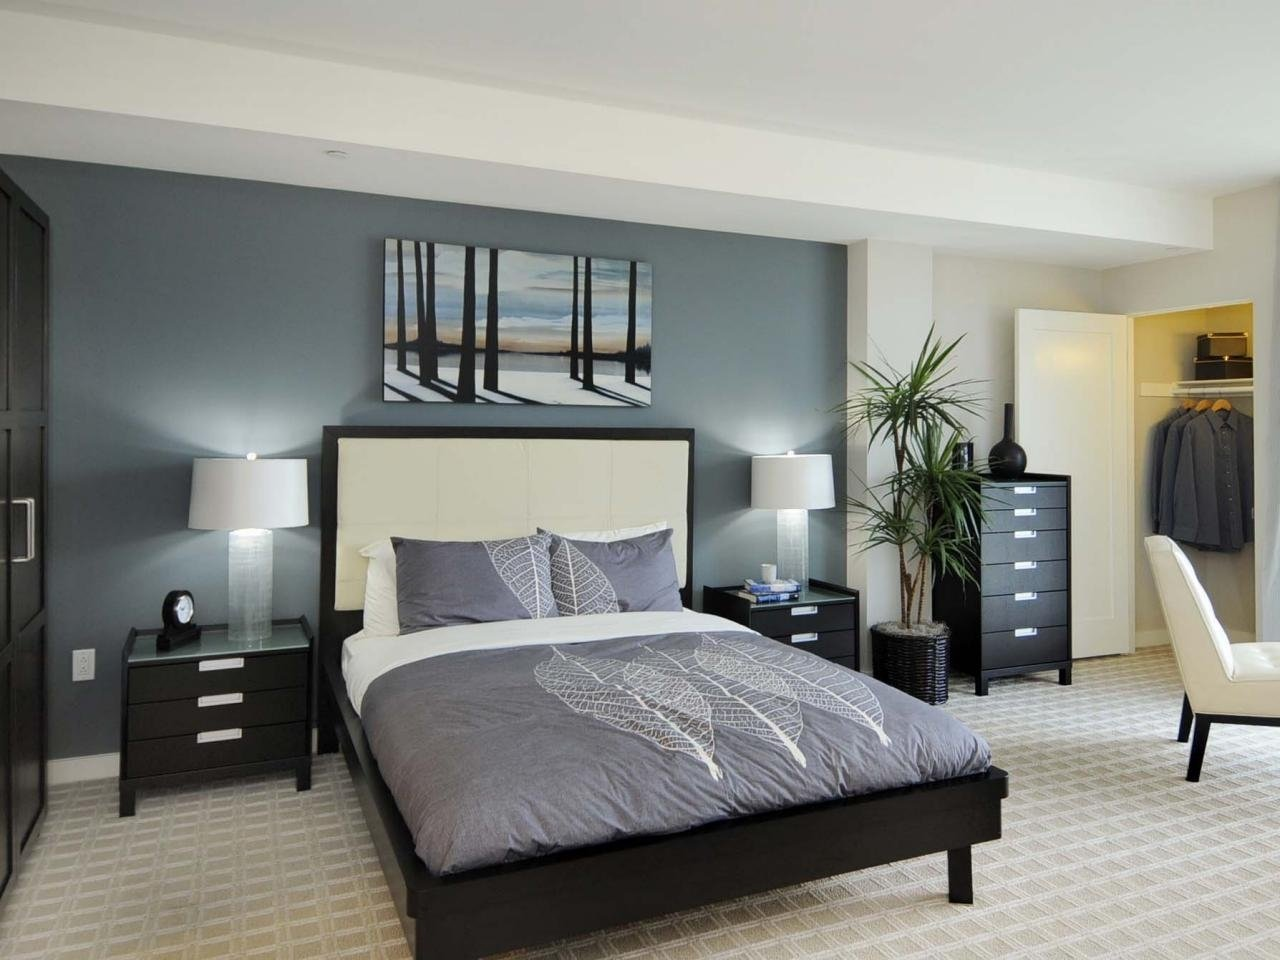 gray master bedrooms ideas hgtv grey and navy blue living room ideas